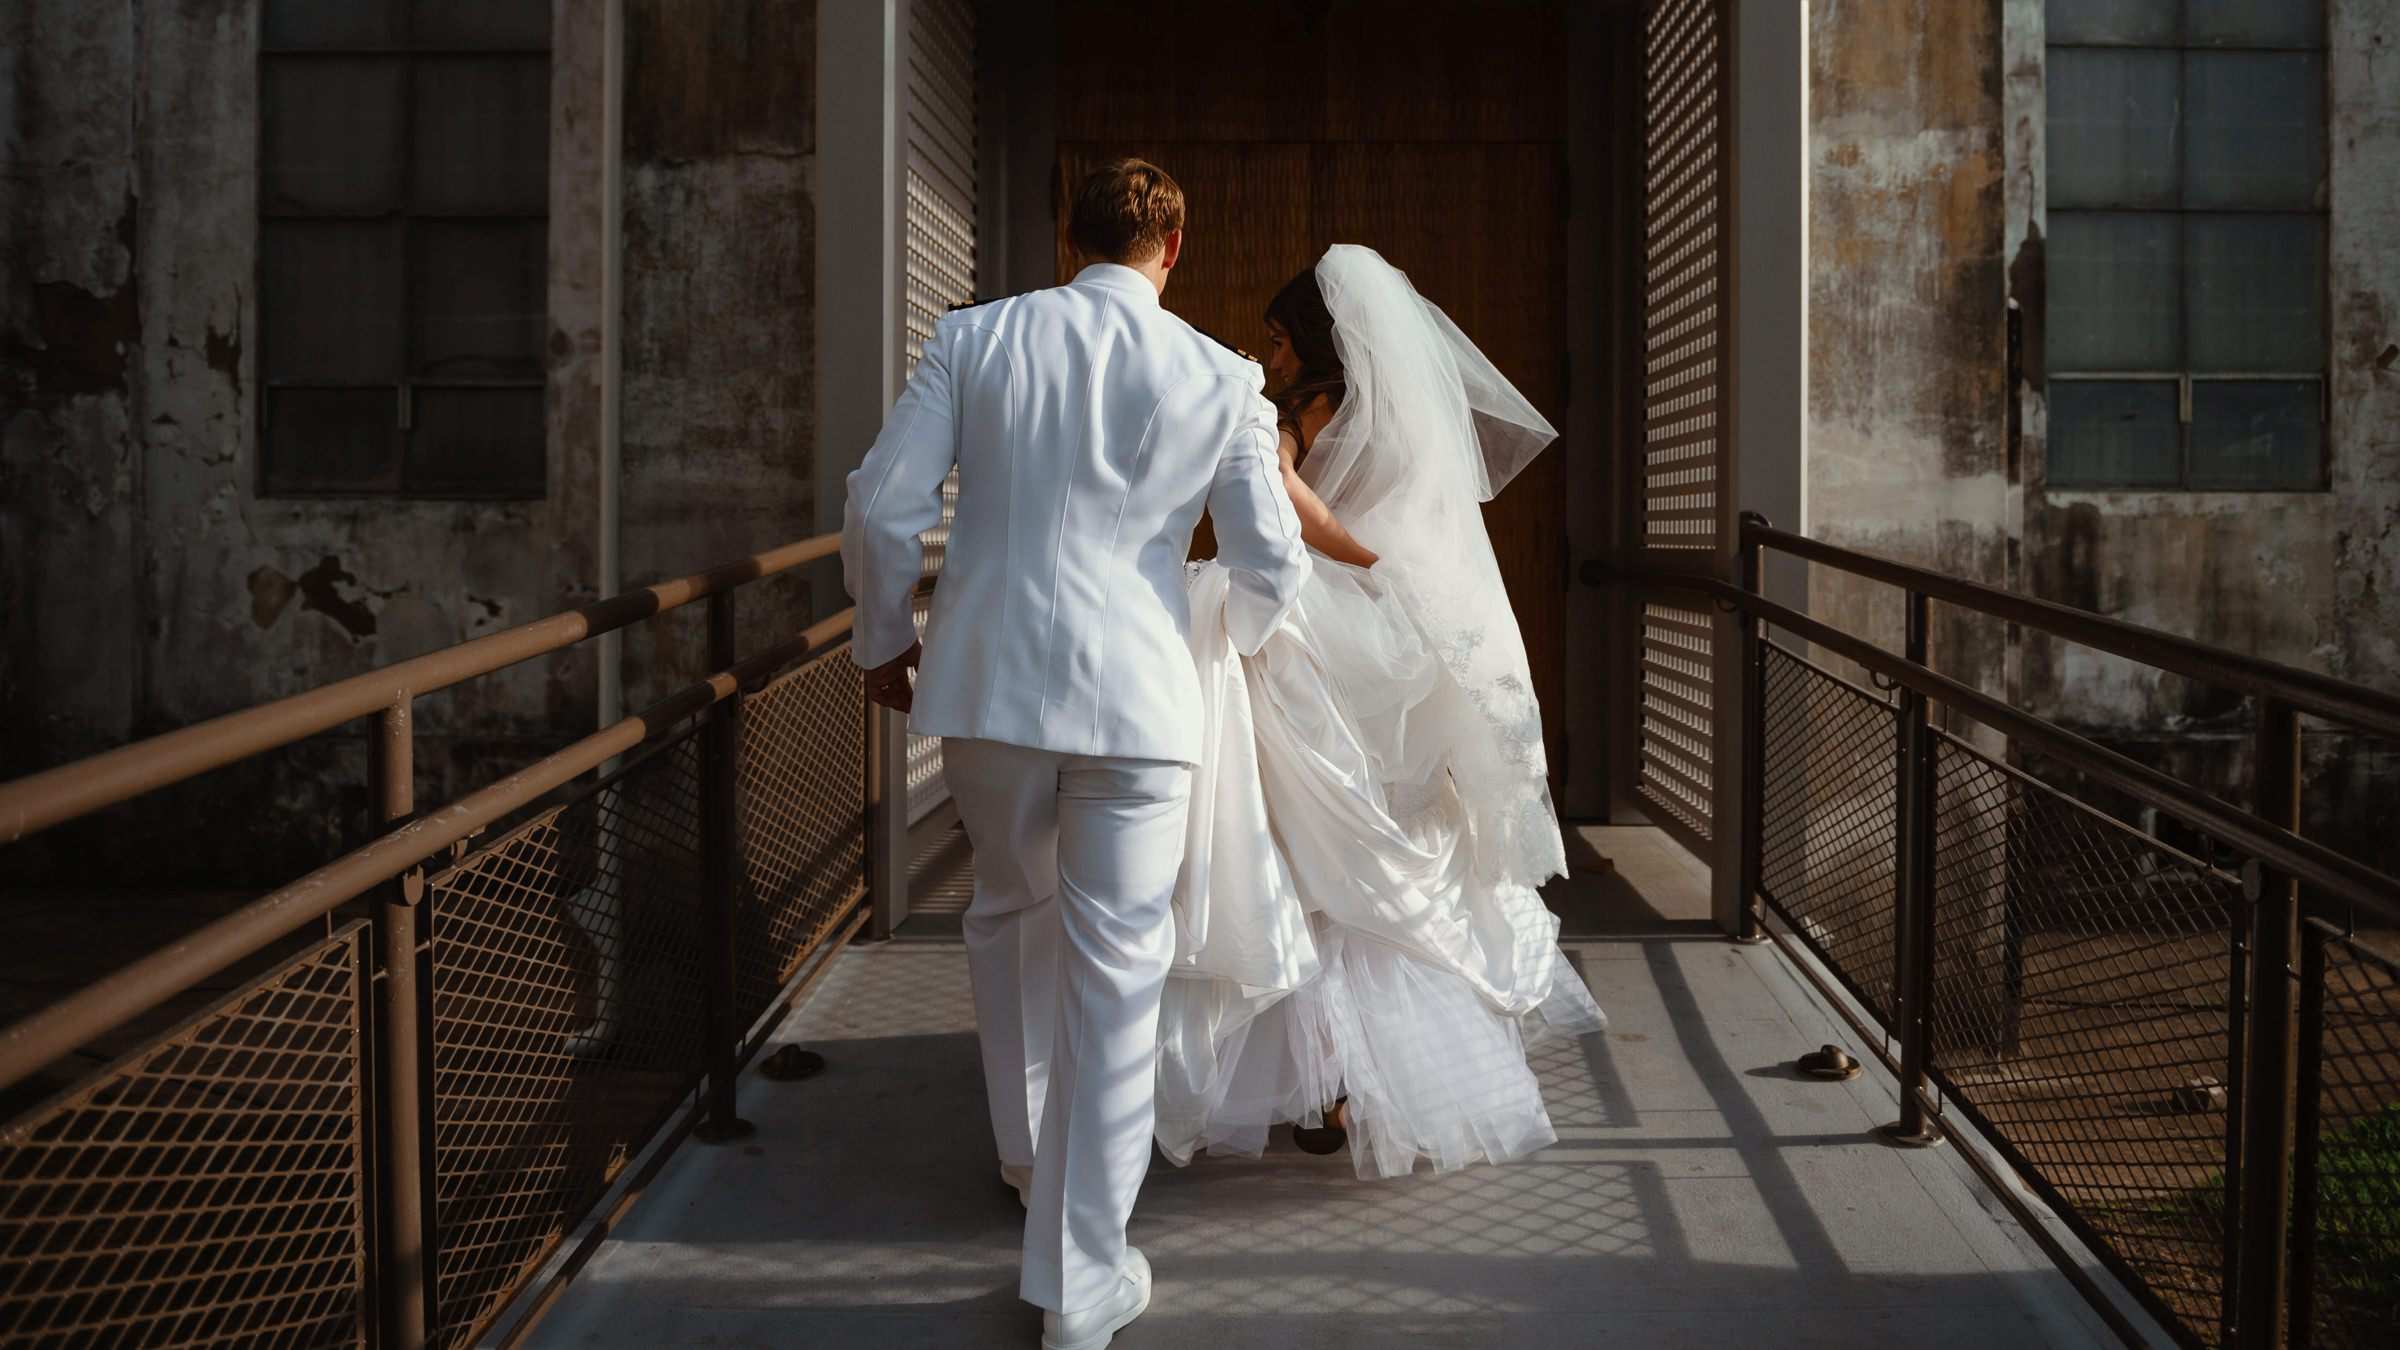 groom carrying his brides dress in behind her-new orleans-austin-houston-wedding- photo by Dark Roux